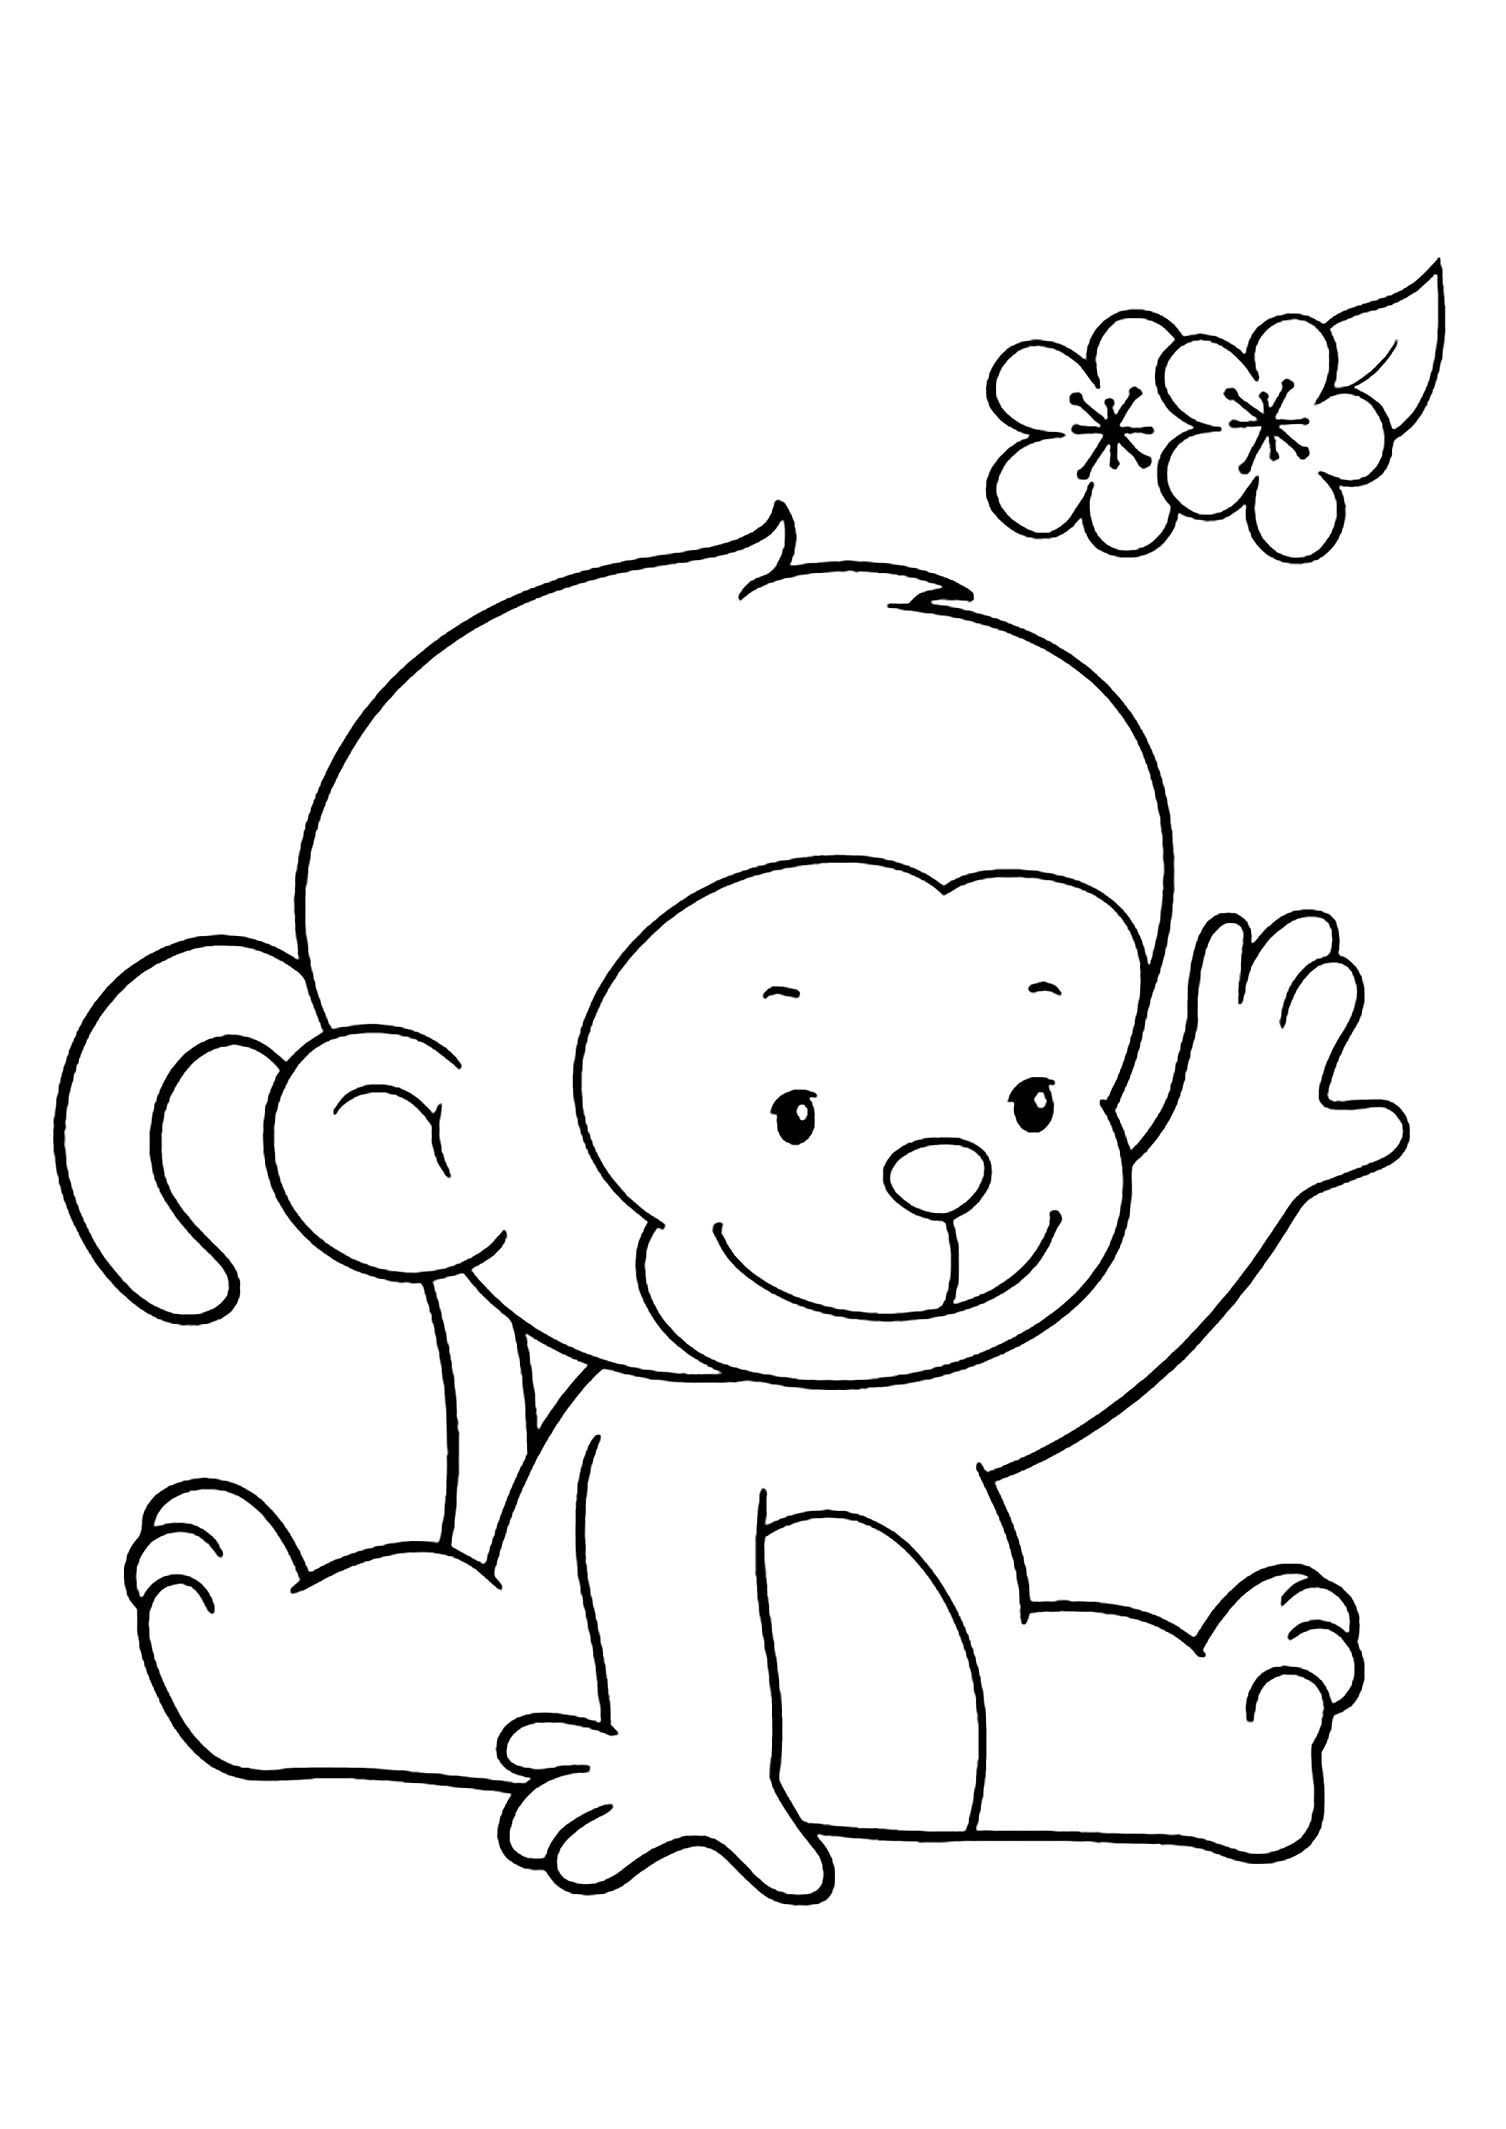 Monkeys for kids - Monkeys Kids Coloring Pages